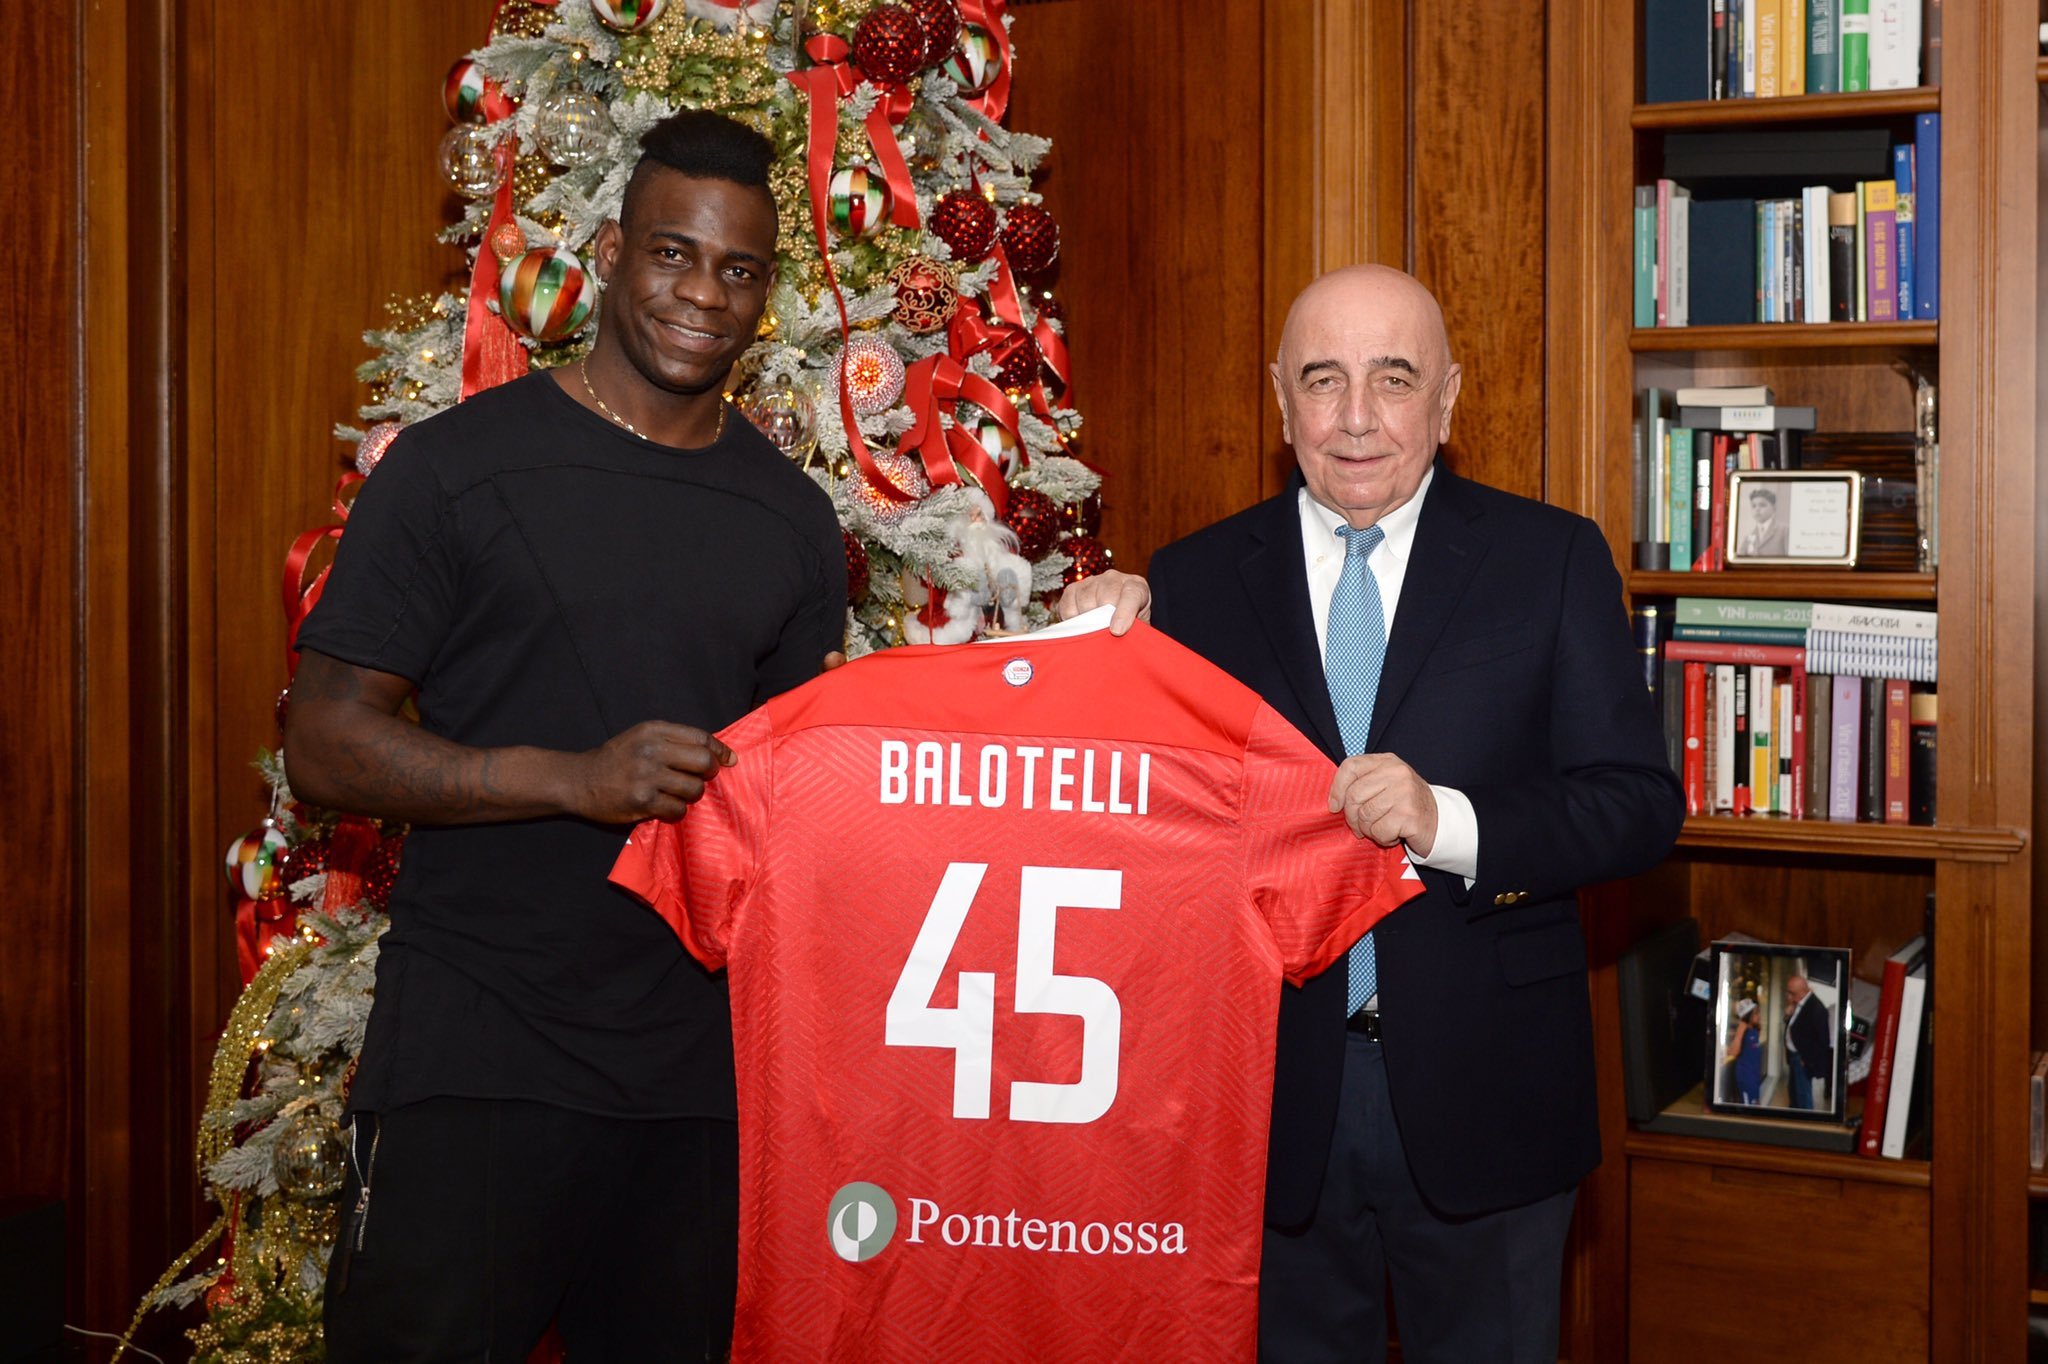 Mario Balotelli dreams of promotion to Serie A with Monza